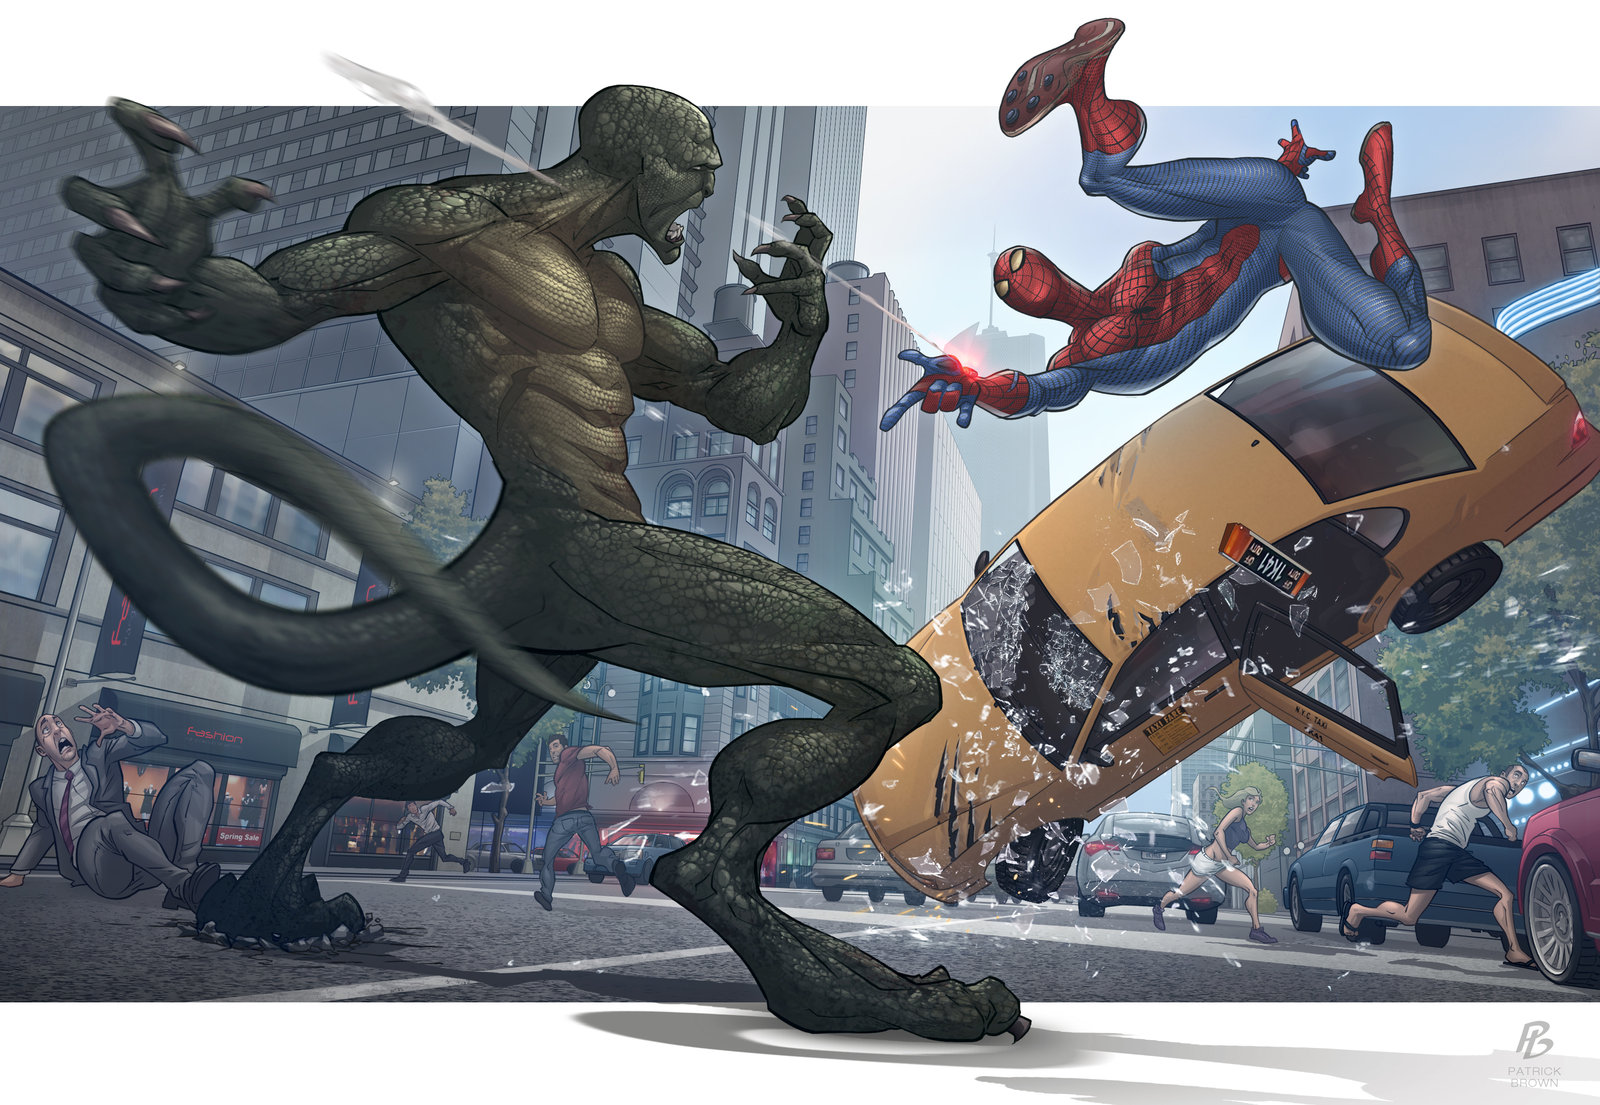 Lizard vs spider man awesome fan art done by deviantart artist patrick